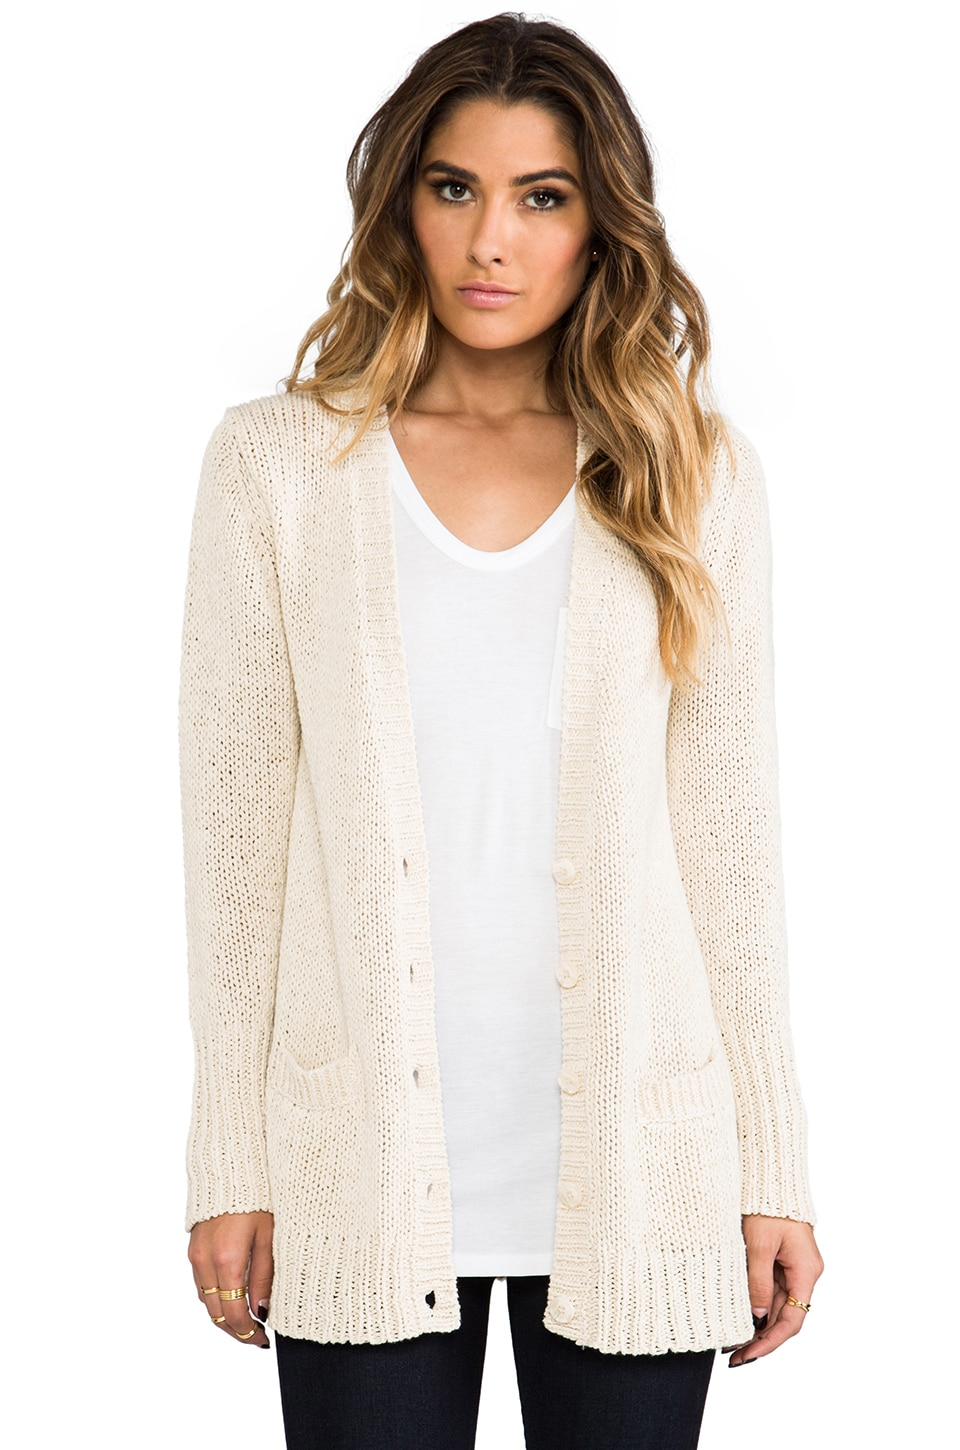 360 Sweater Daphne Cardigan in Natural